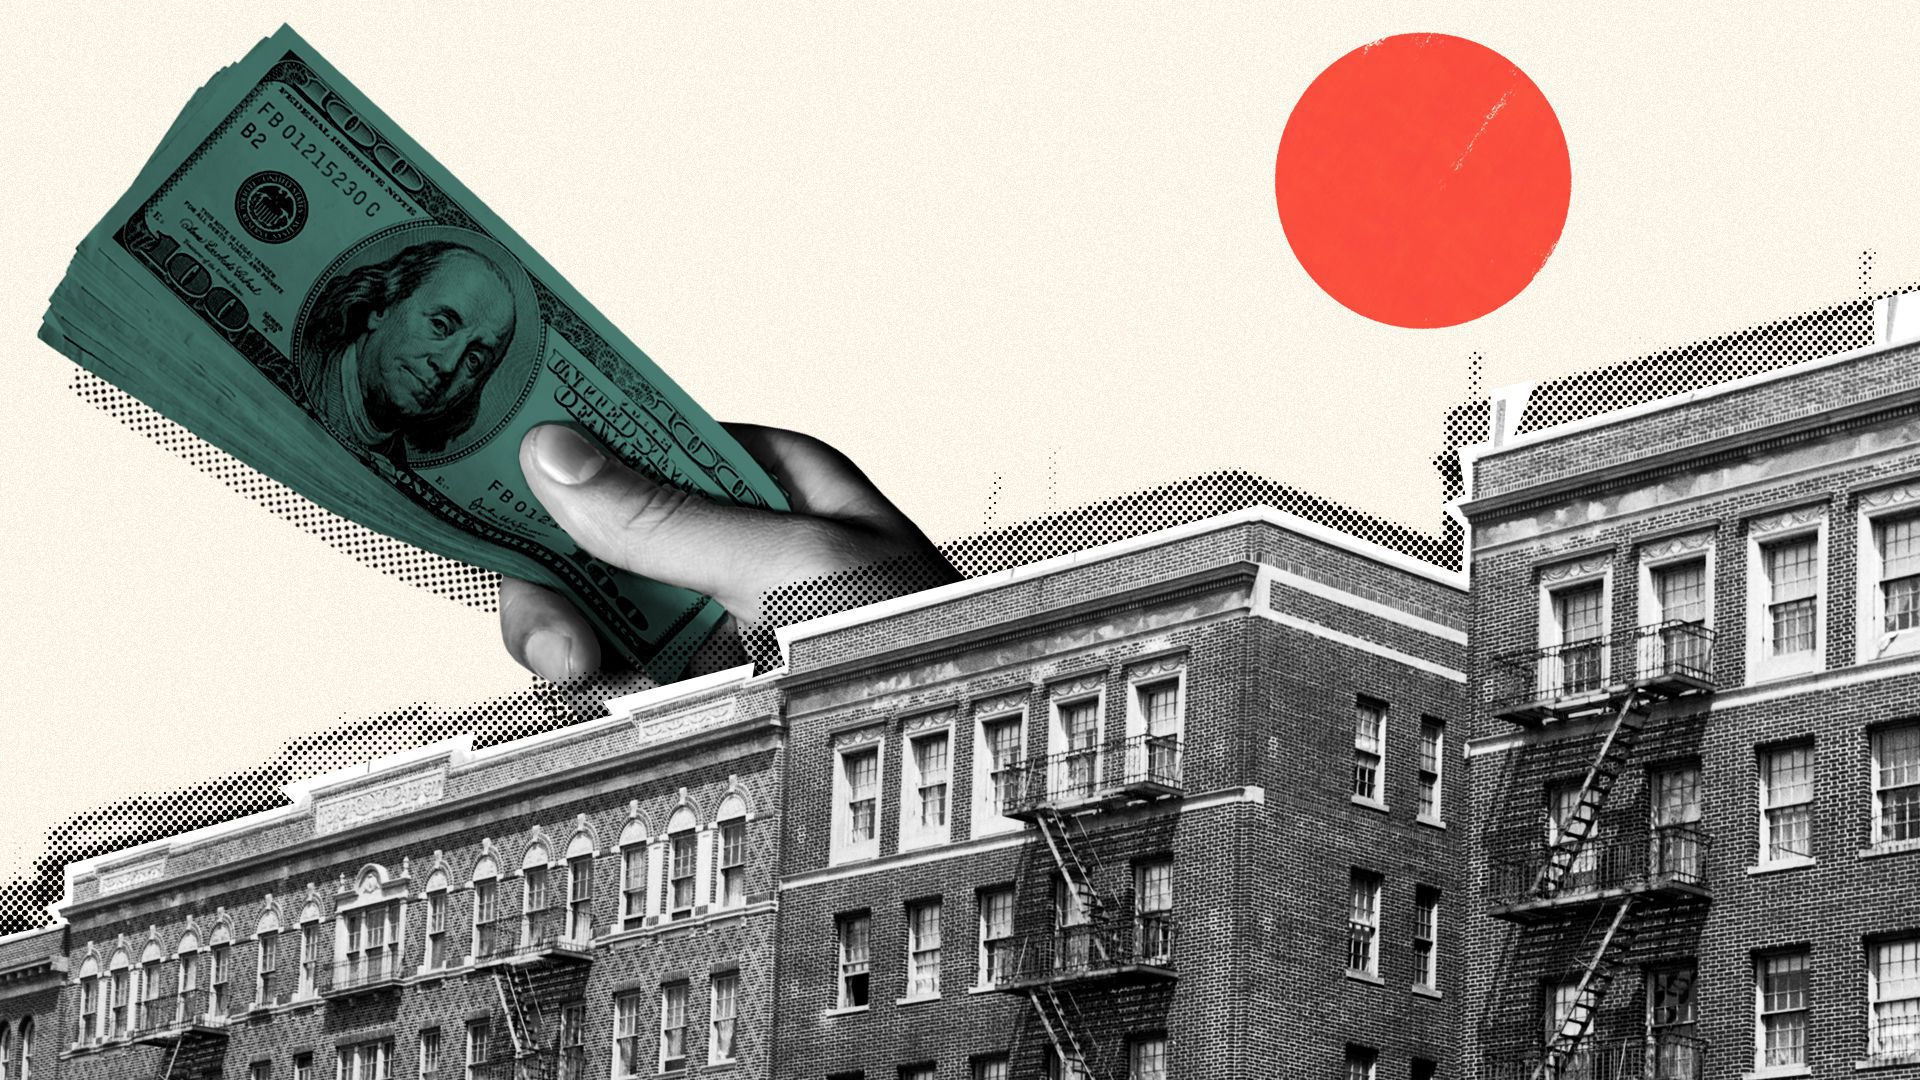 Photo illustration of a row of apartment buildings, with a giant hand holding a stack of hundred dollar bills behind them